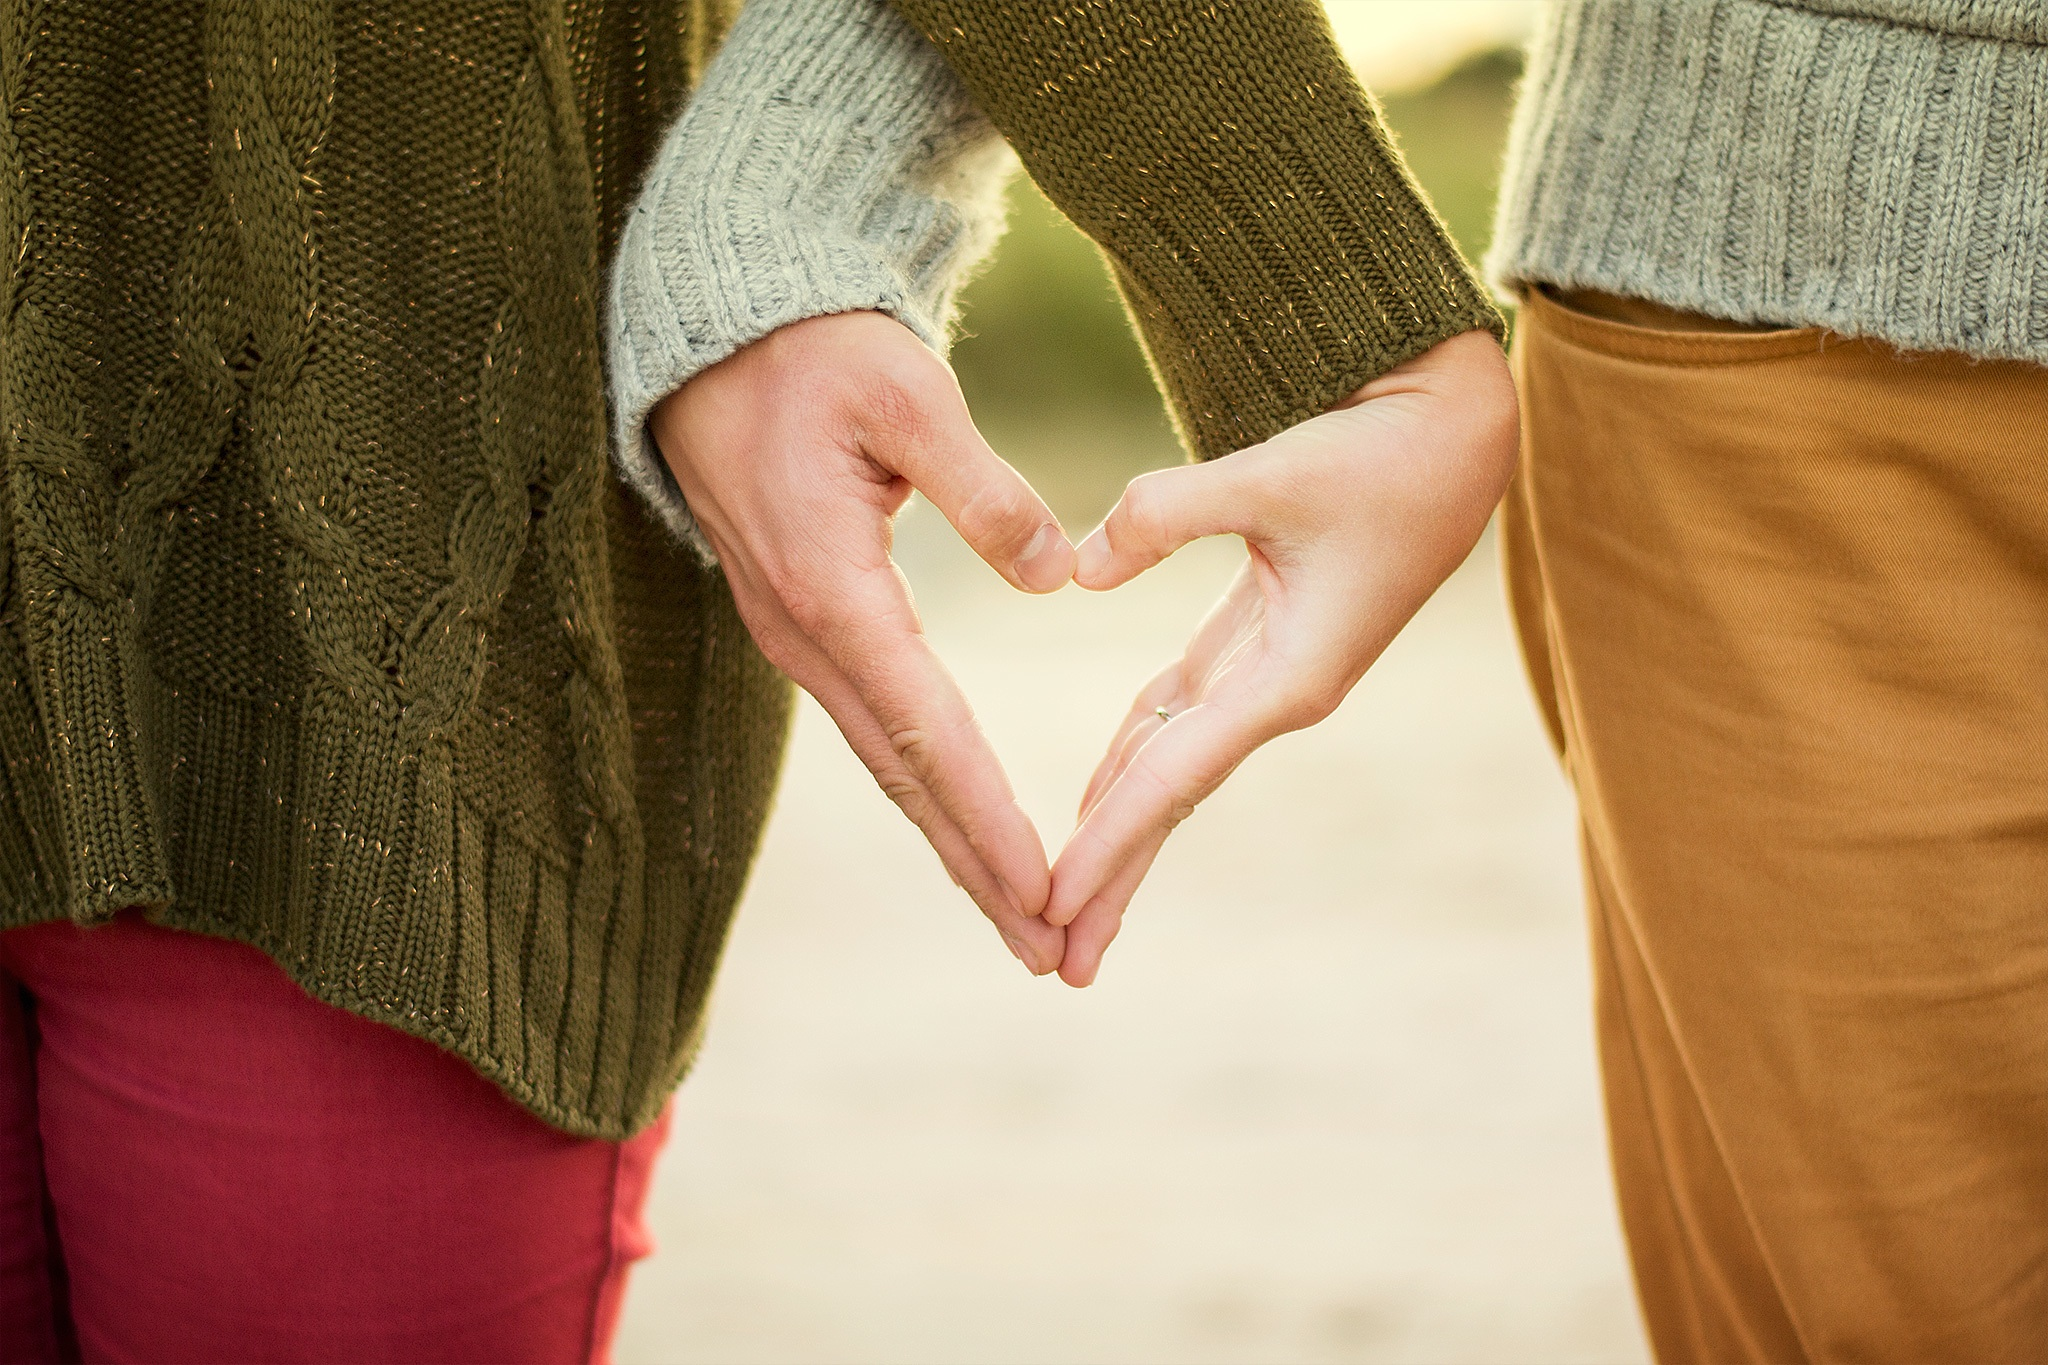 Six steps for budgeting as a couple